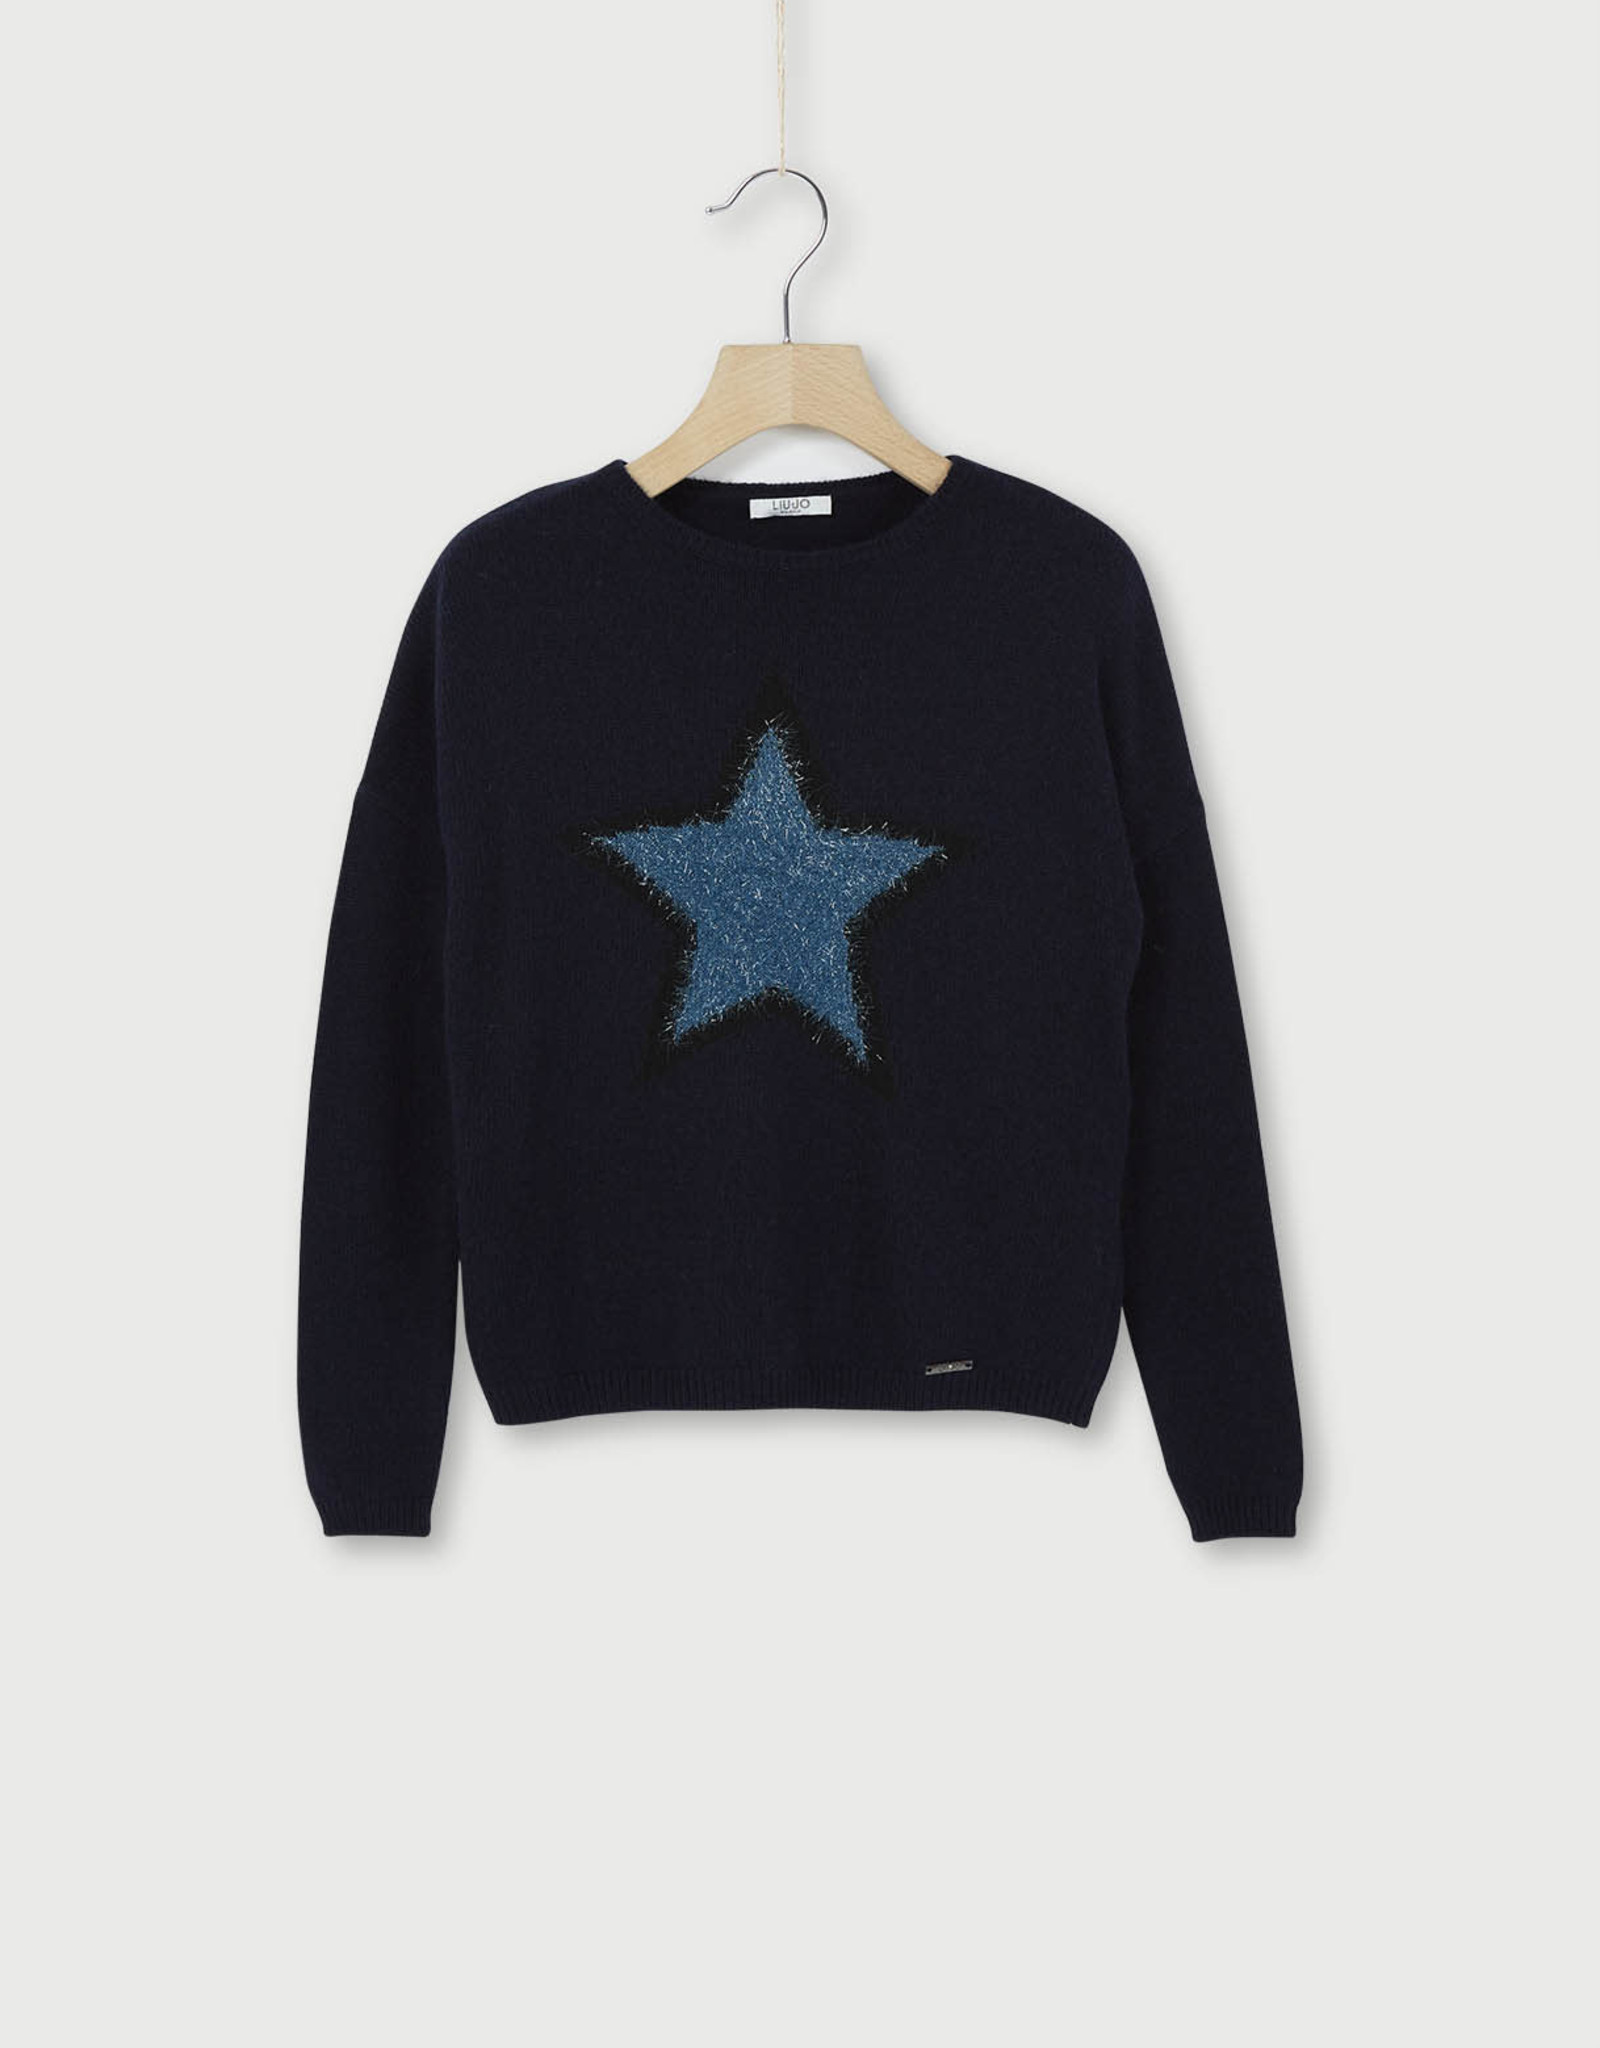 LIU JO Pull midnight sky star